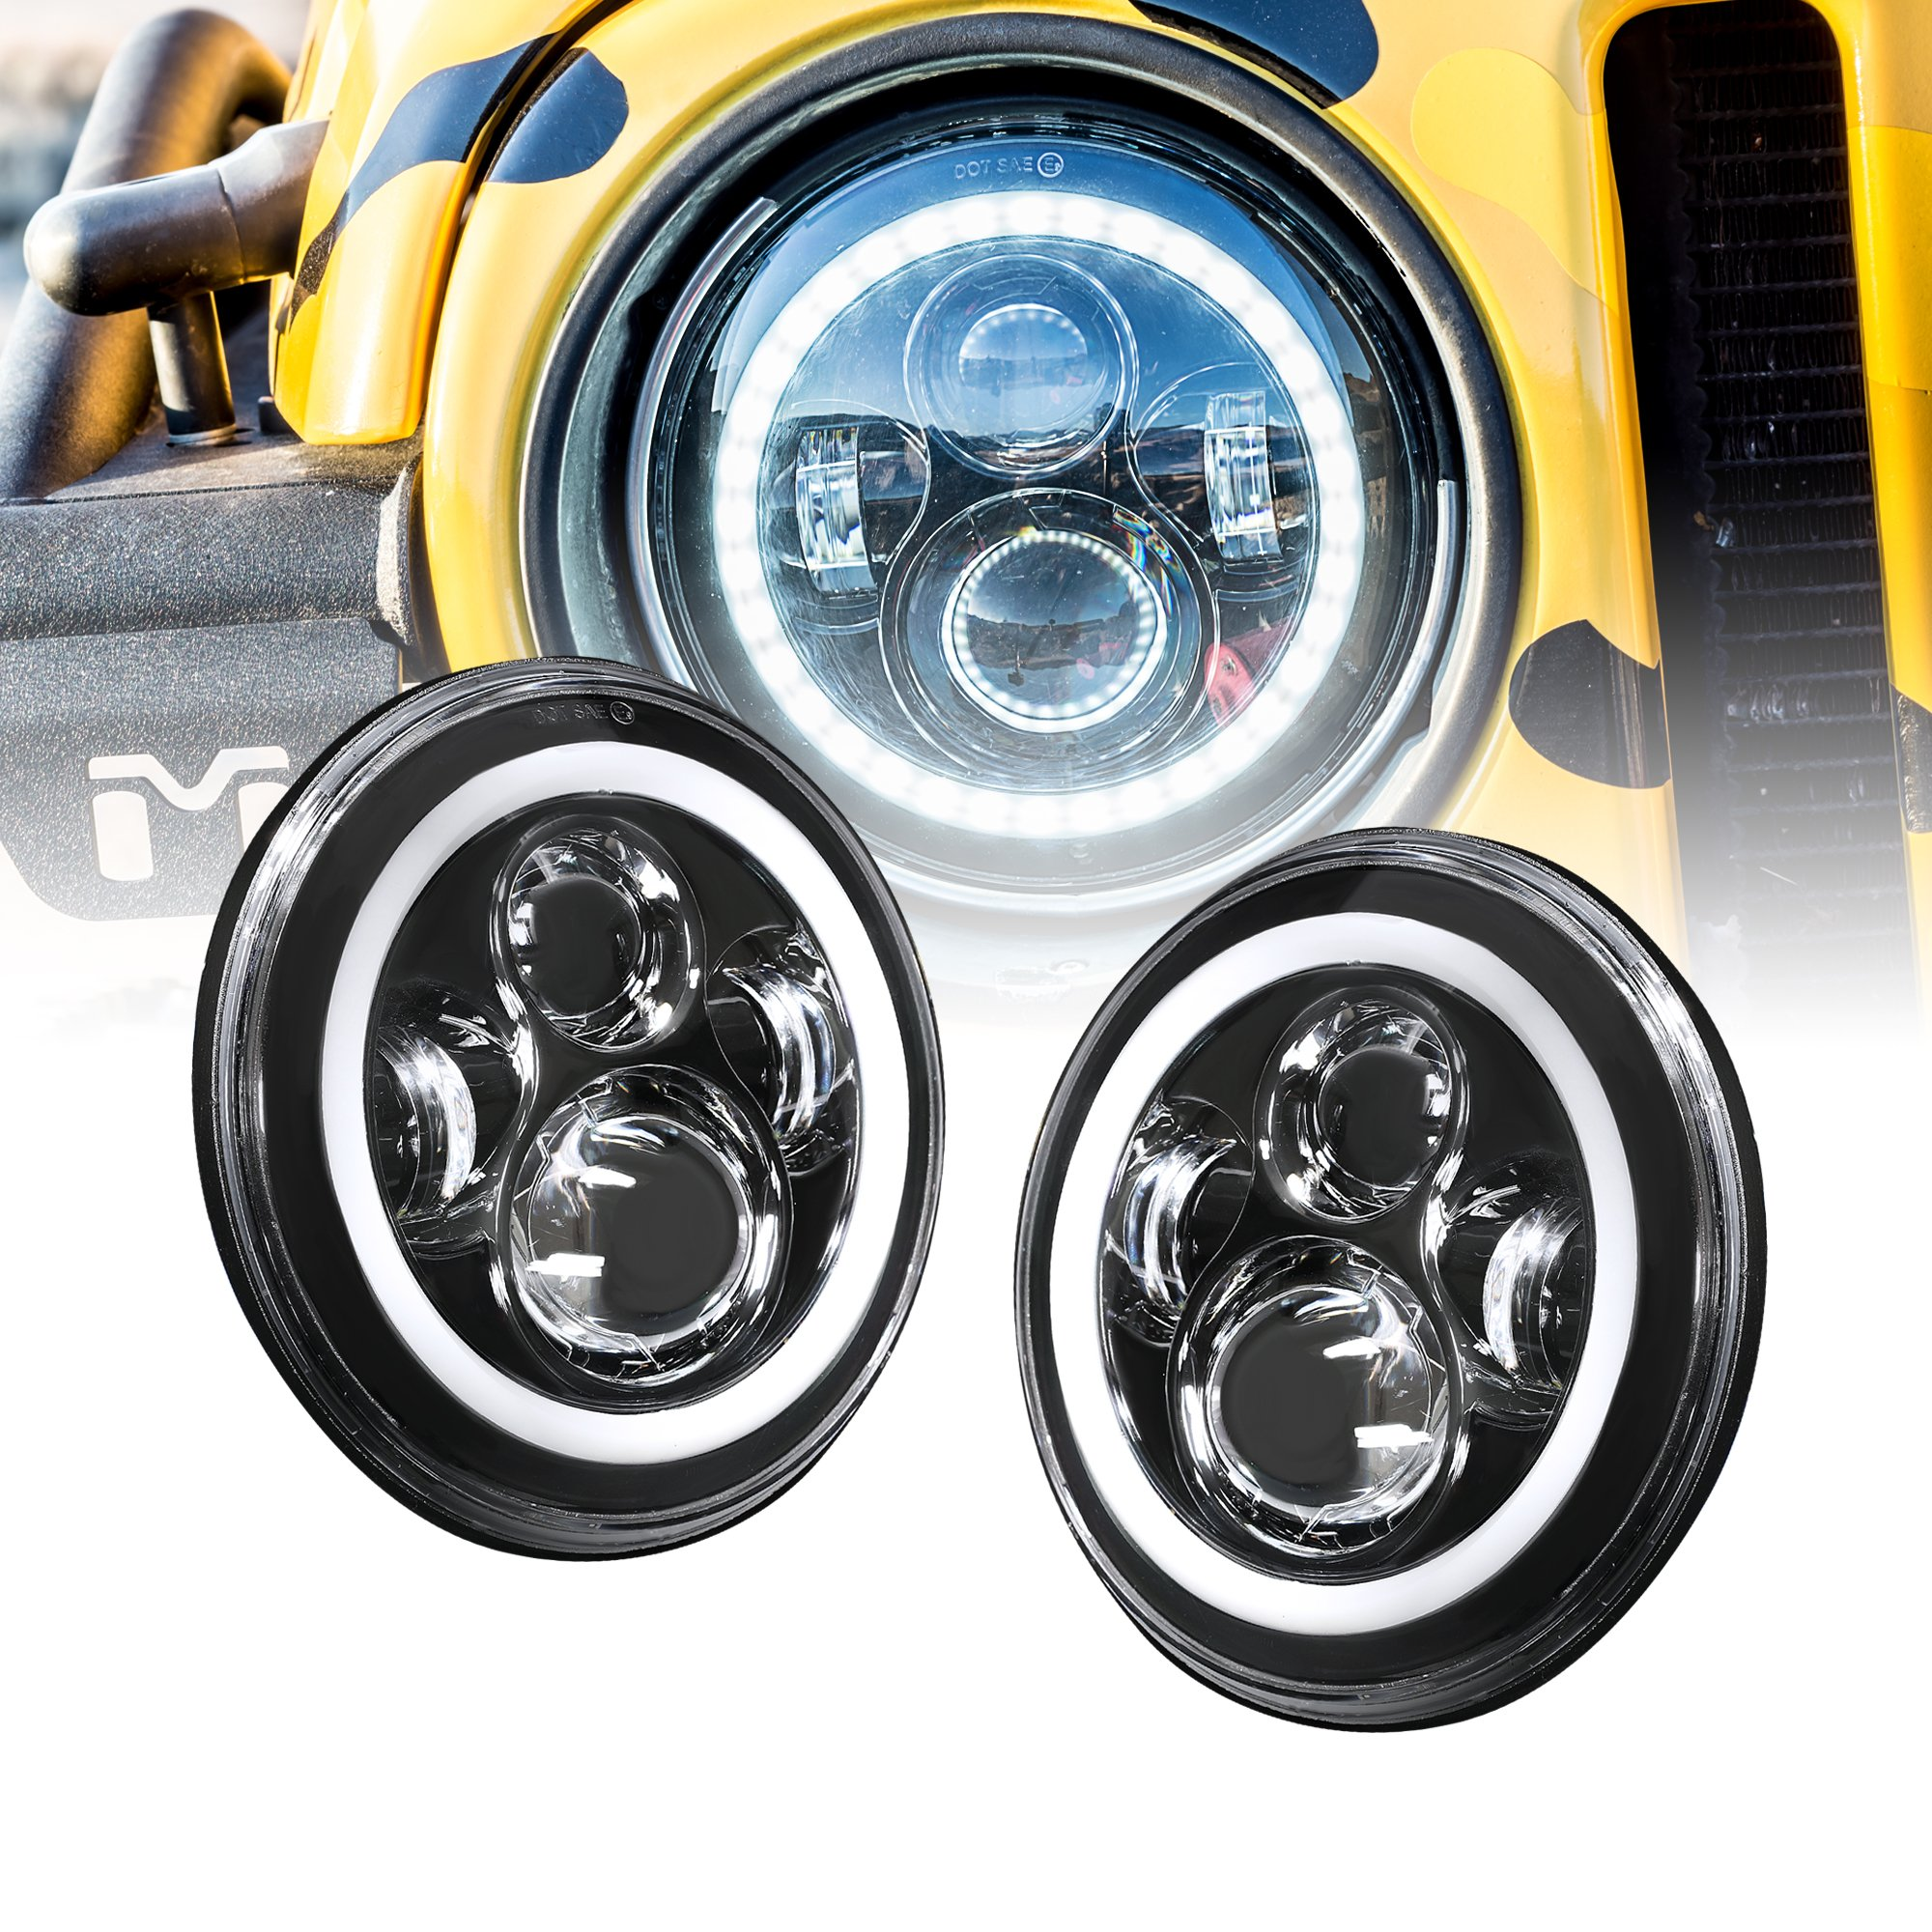 """OLS Universal 7"""" Round H4 45W LED Headlight Sealed Beam 2 pc Set [Plug & Play] [HALO Turn Signal & DRL] [H4 to H13 Adapter] - For Jeep, Harley Davidson Motorcycles, Land Cruiser & More - Cold White"""